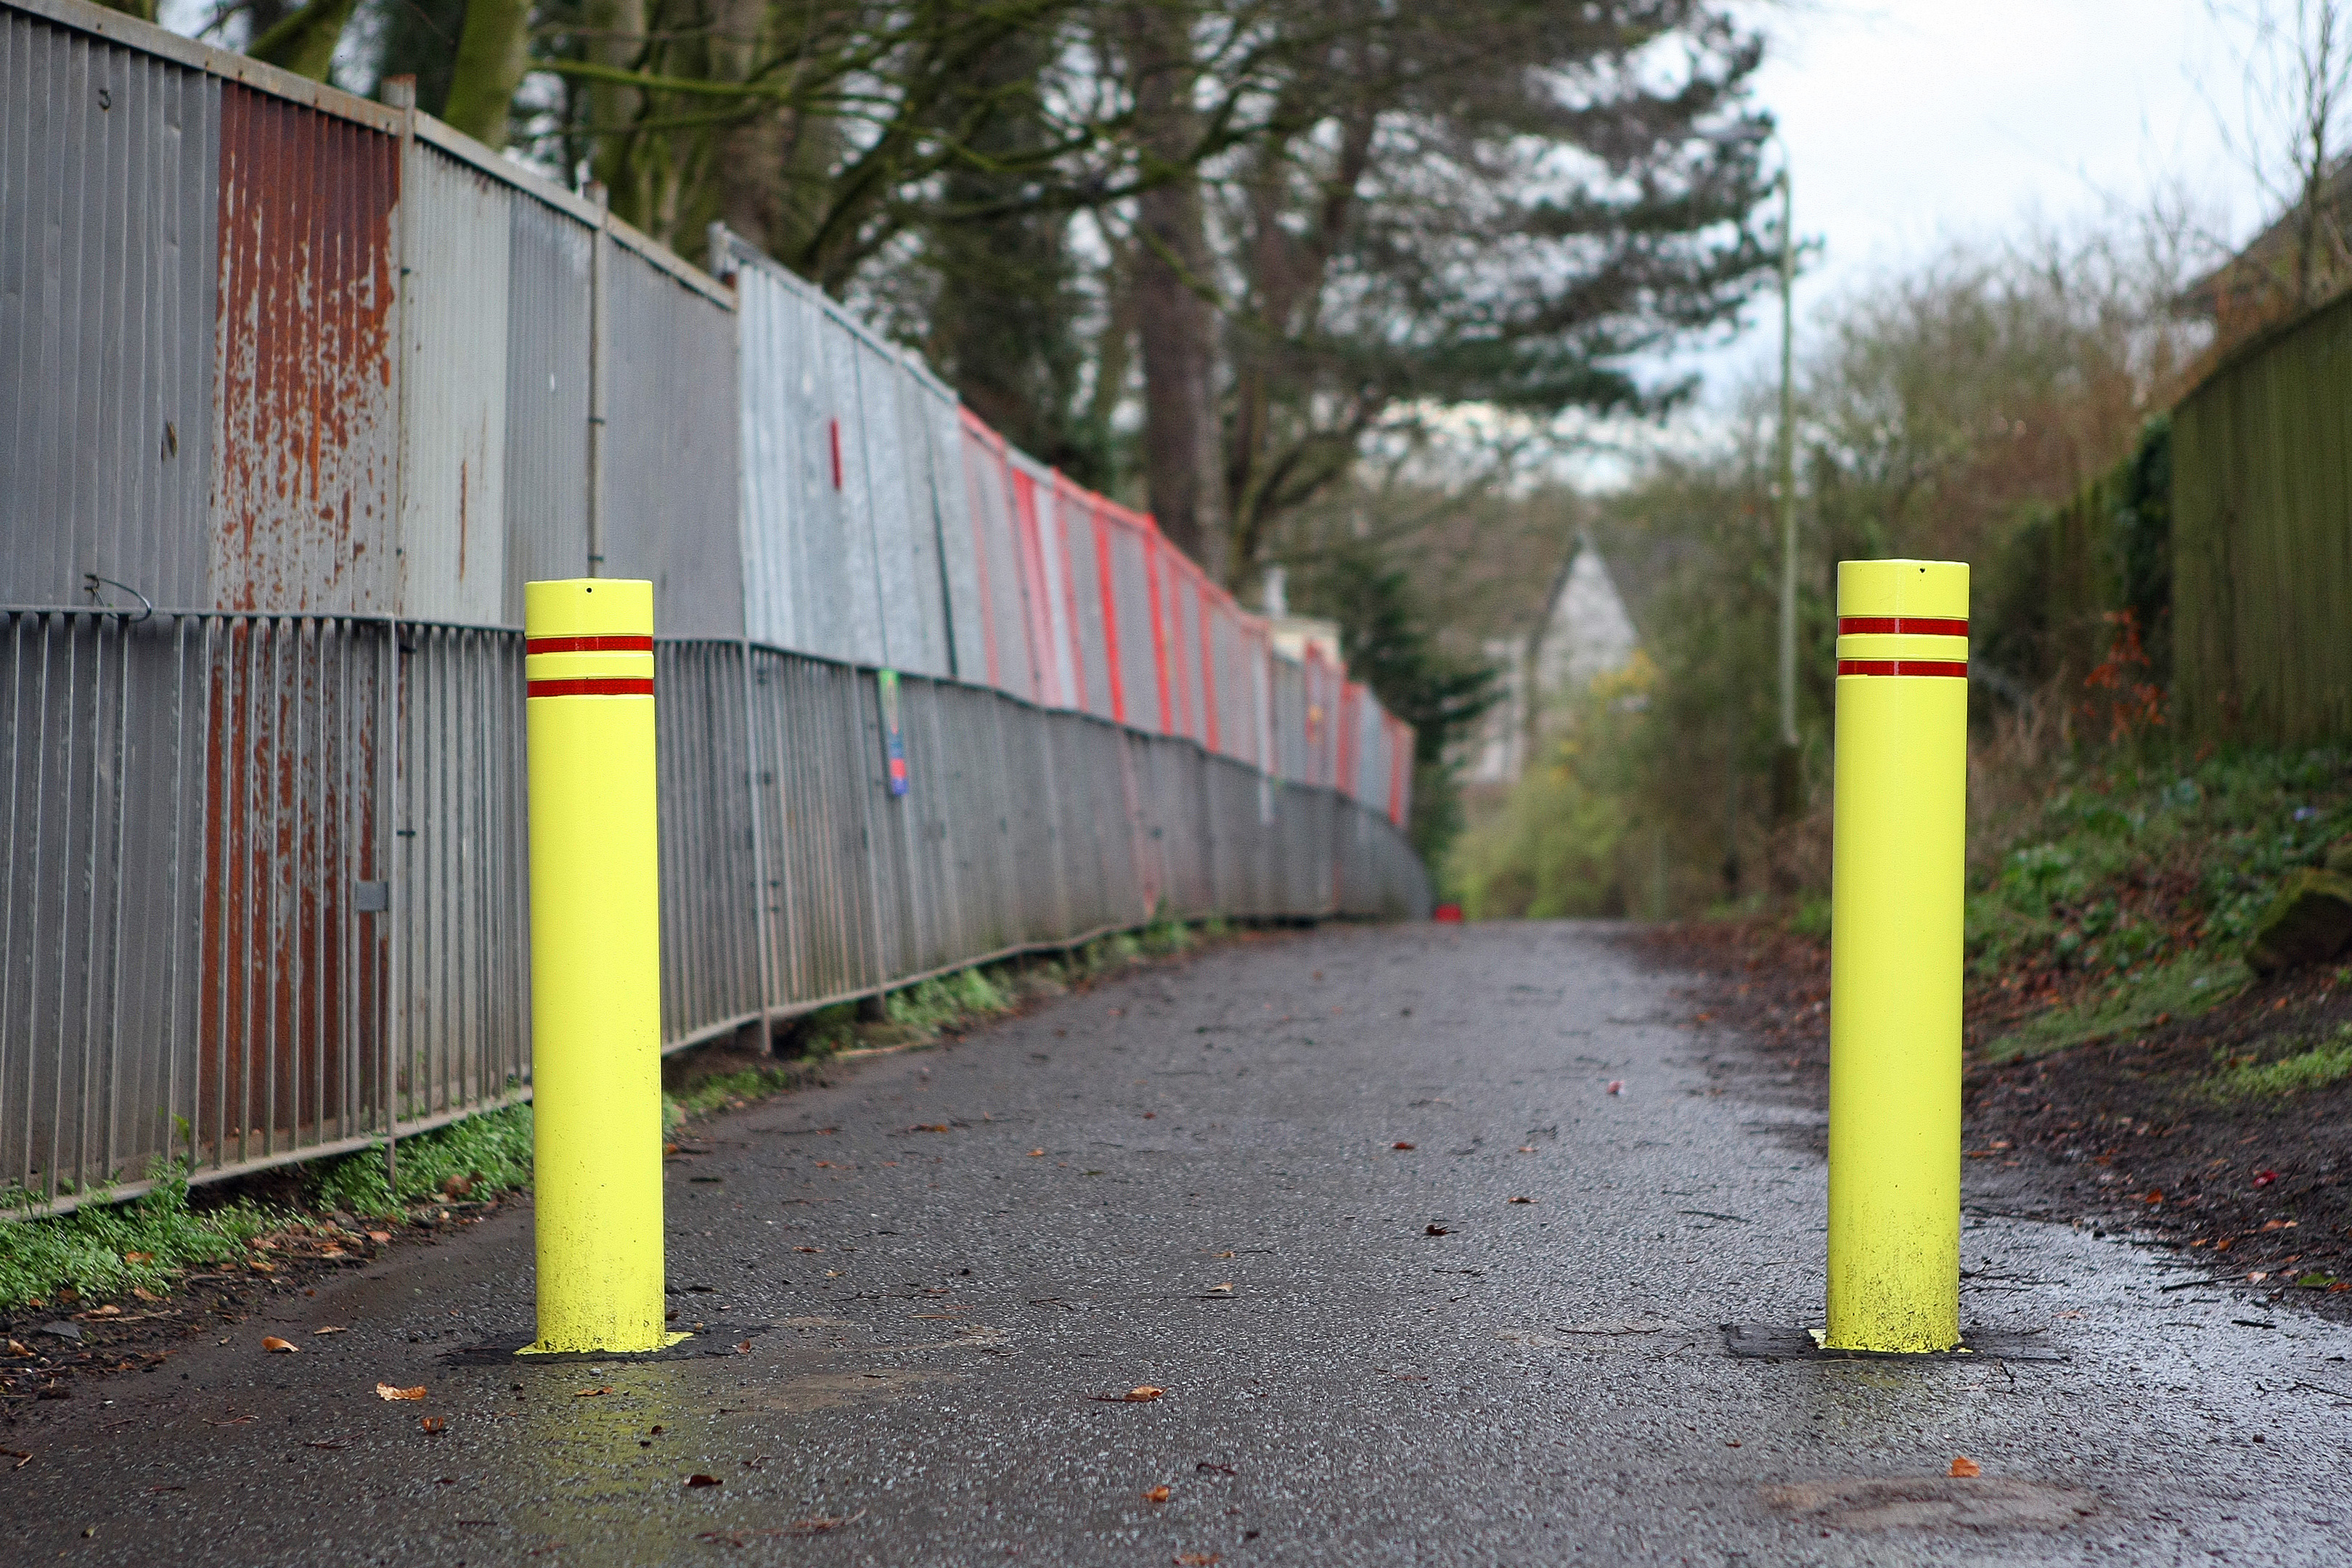 Bollards have been installed at Panmurefield